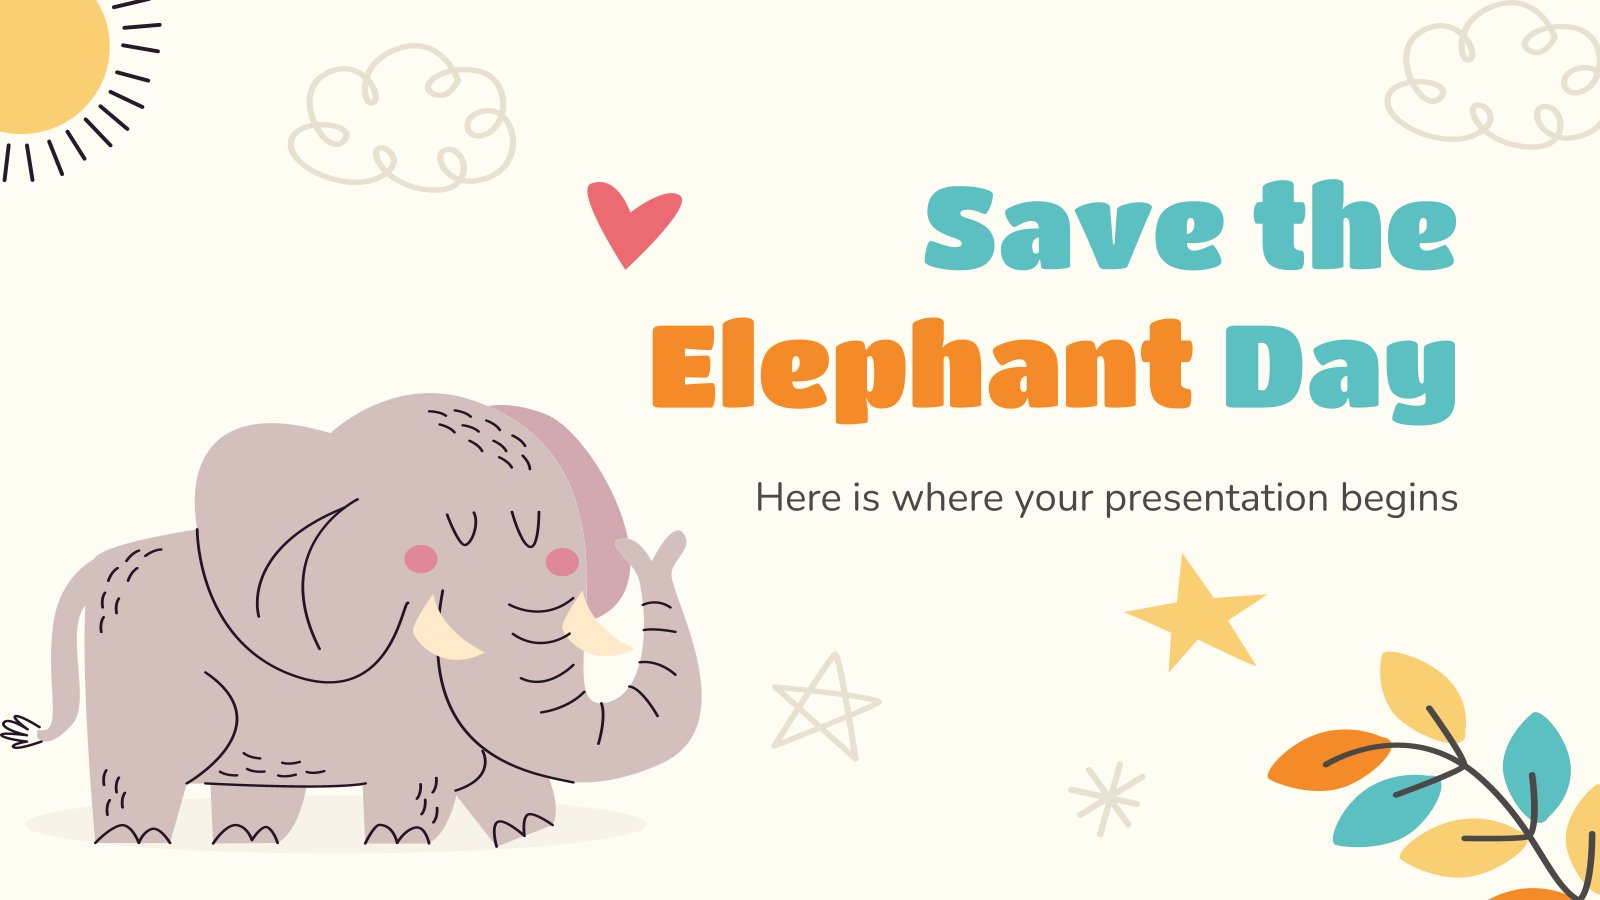 Save the Elephant Day presentation template